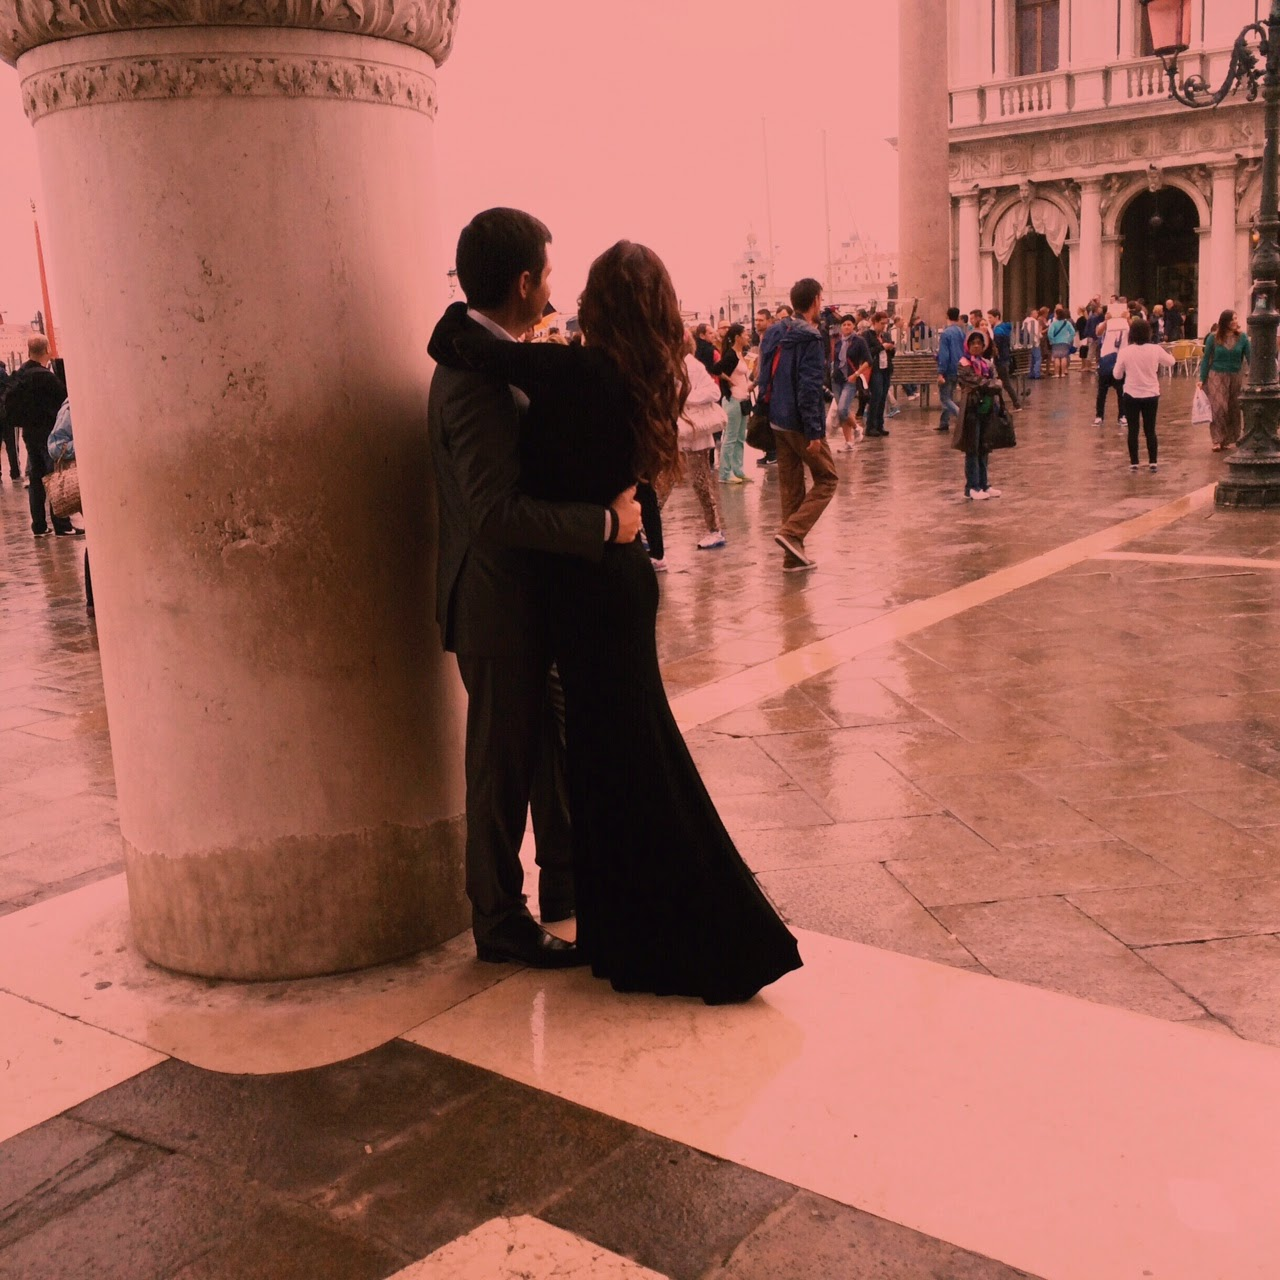 Lovers-Outside-The-Doges-Palace-venice